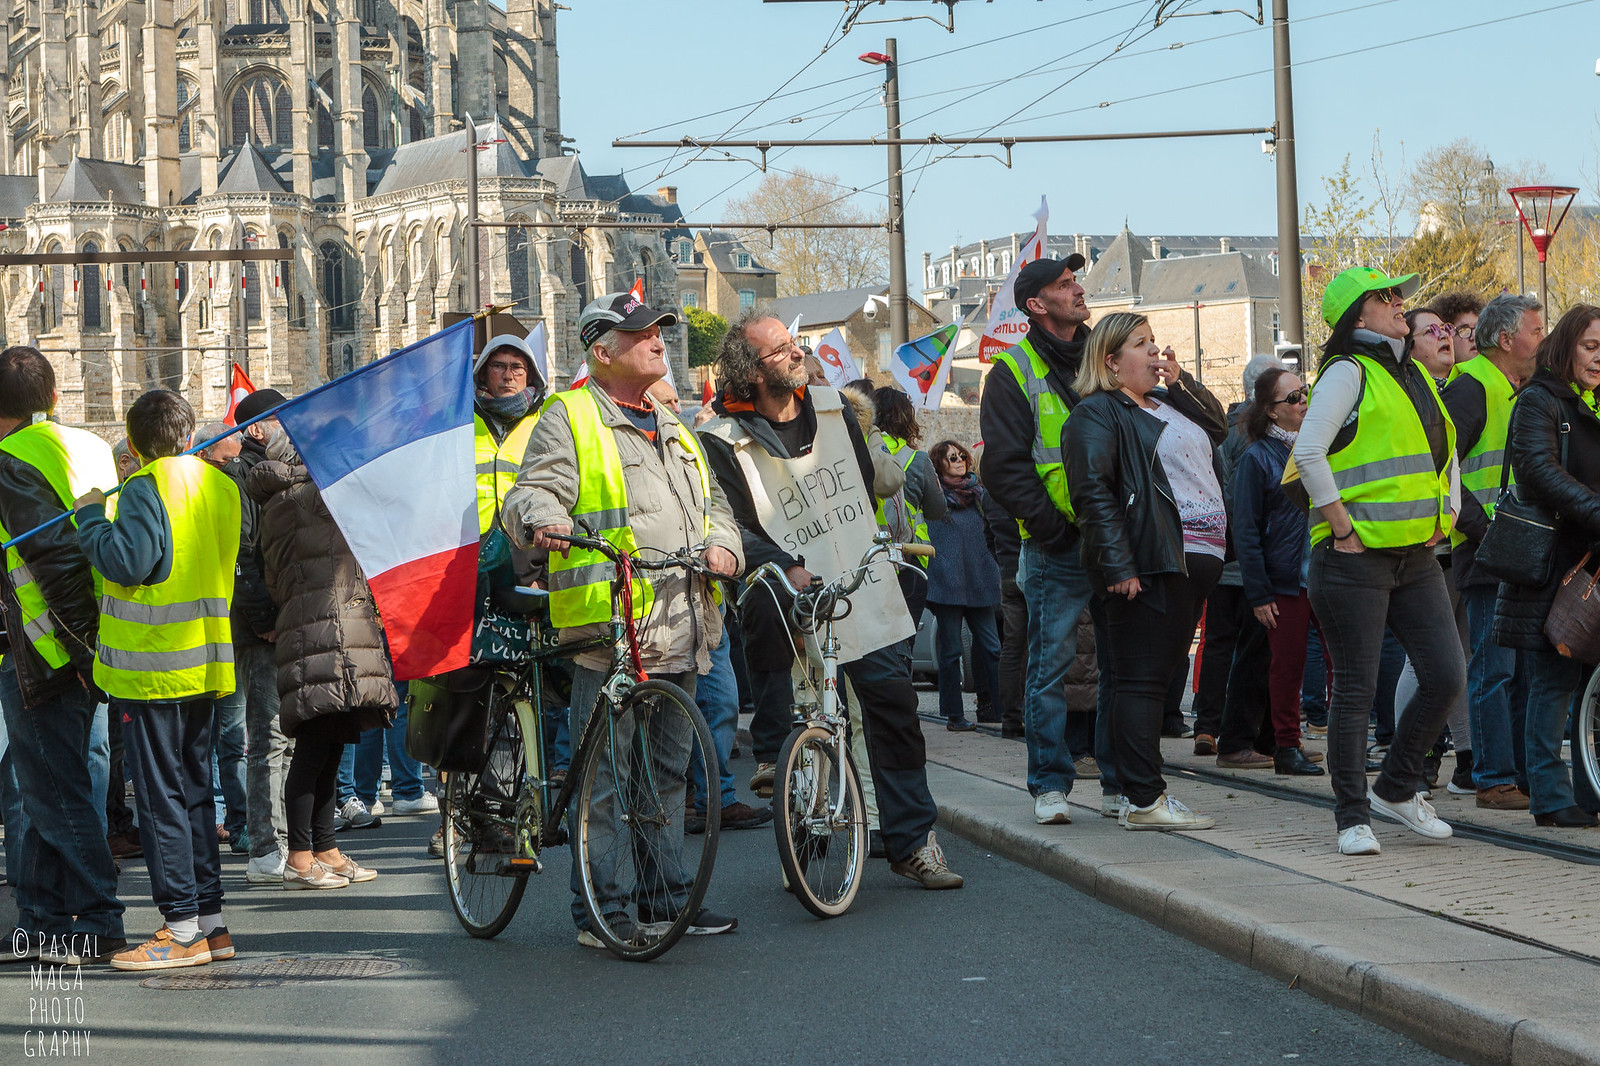 Paris on Fire: Lessons from France's Yellow Vest Movement